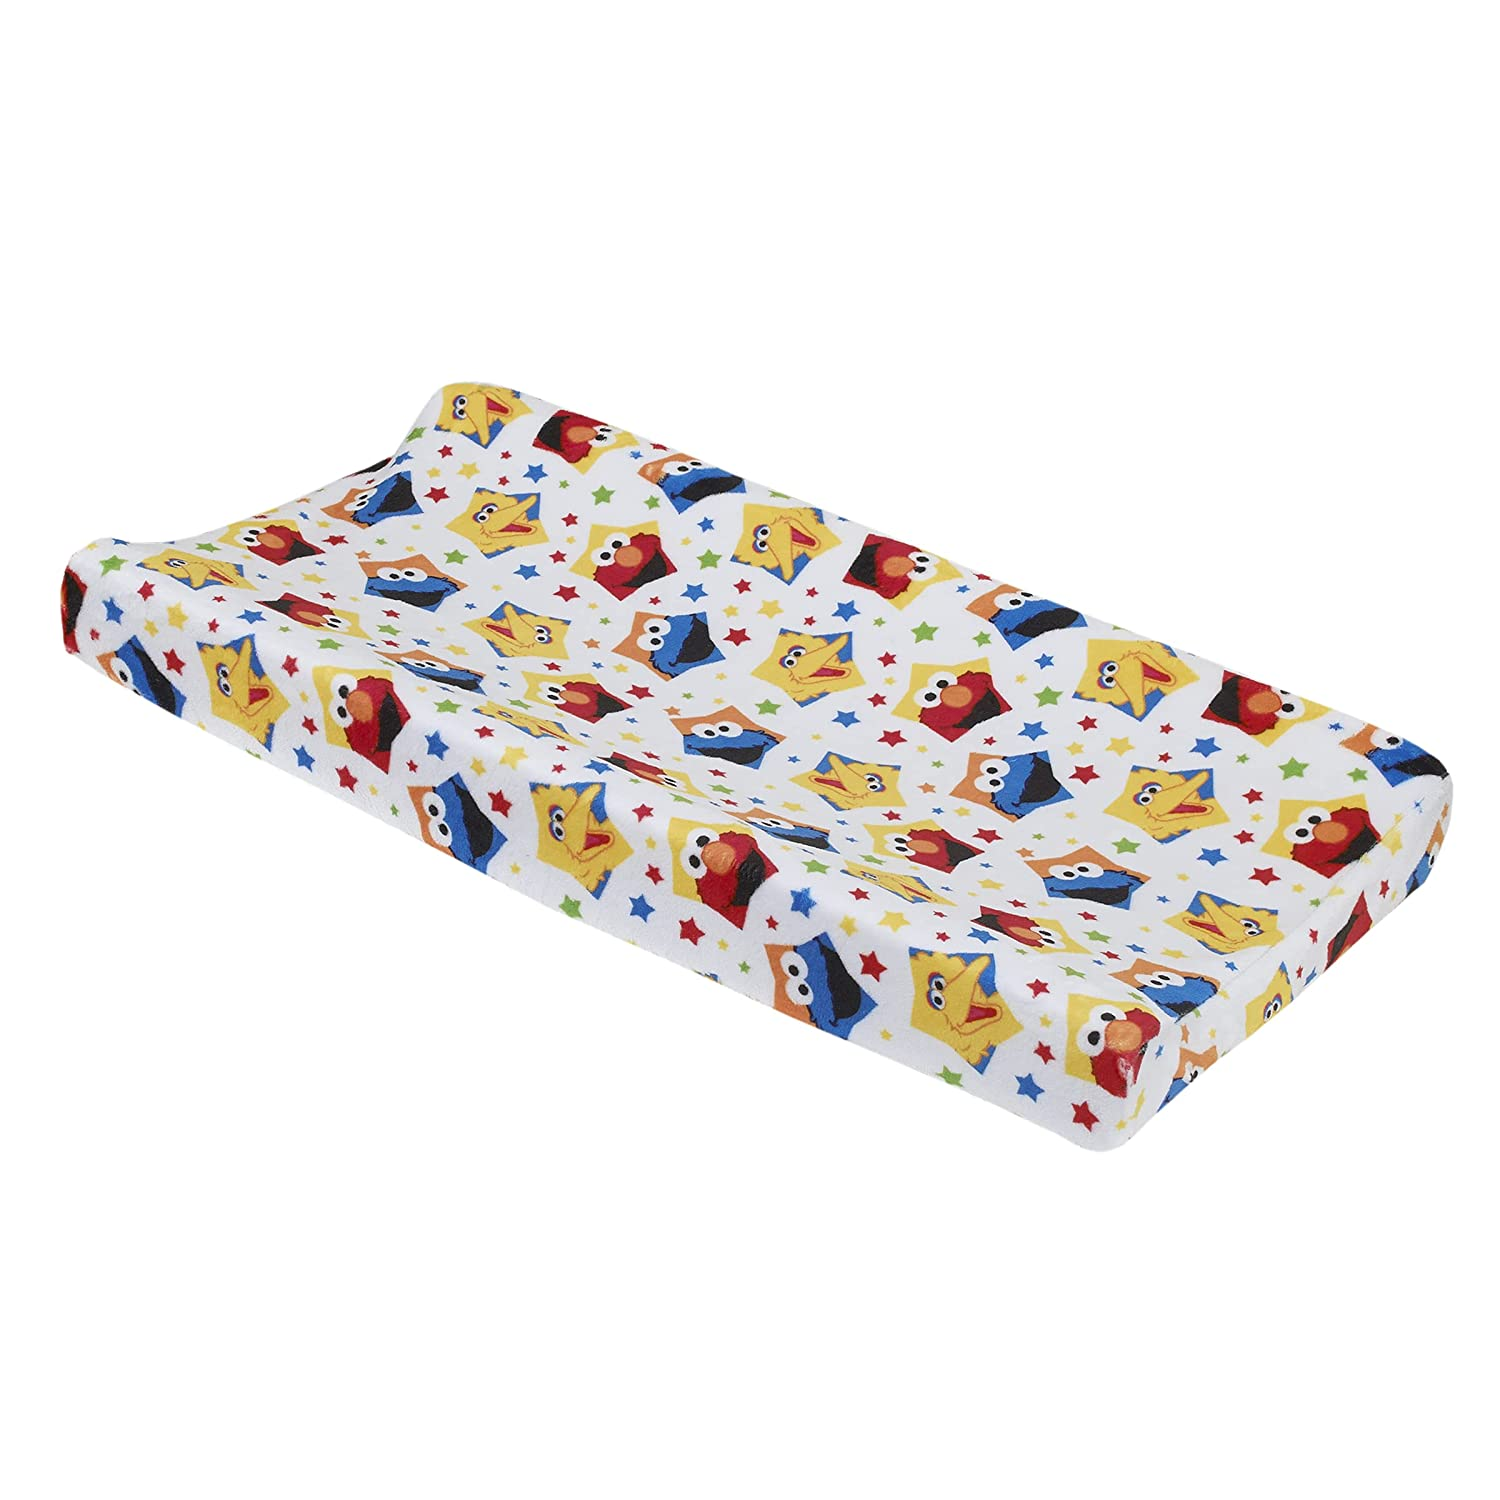 Sesame Street Elmo, Big Bird, & Cookie Monster Red, Yellow, Blue & White with Stars Super Soft Changing Pad Cover, Red, Blue, Yellow, Green